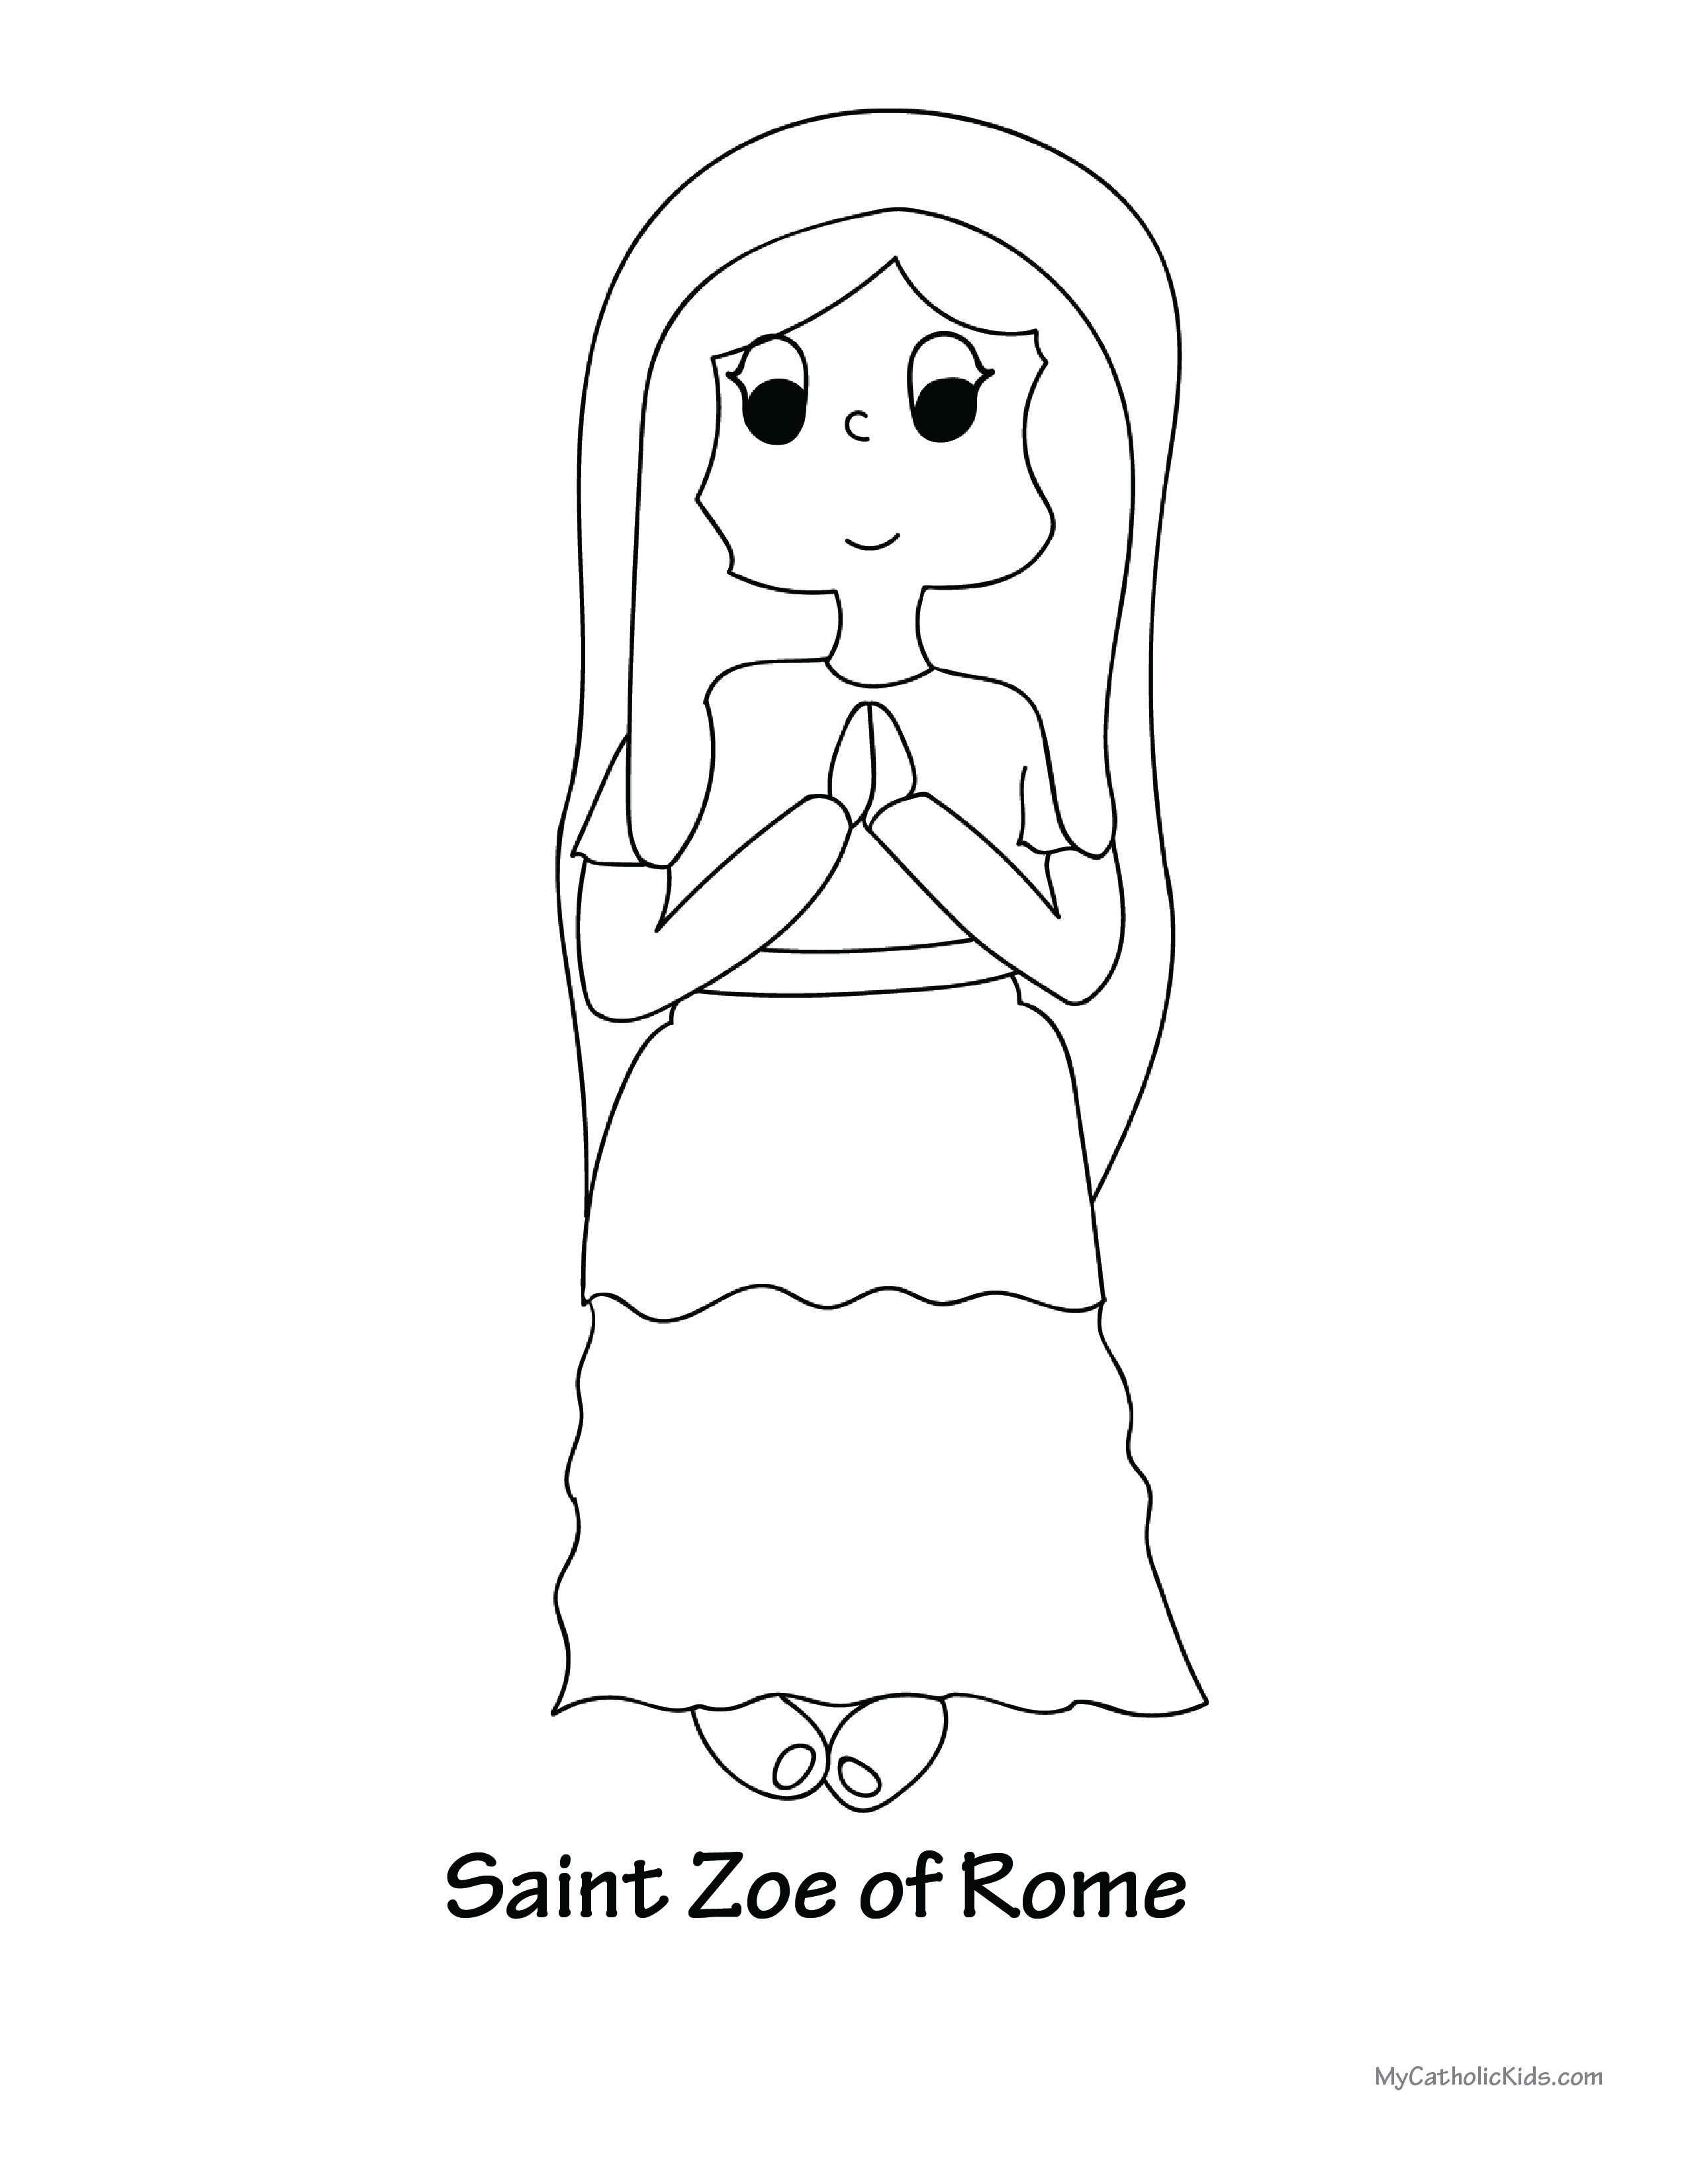 Saint Zoe coloring sheet